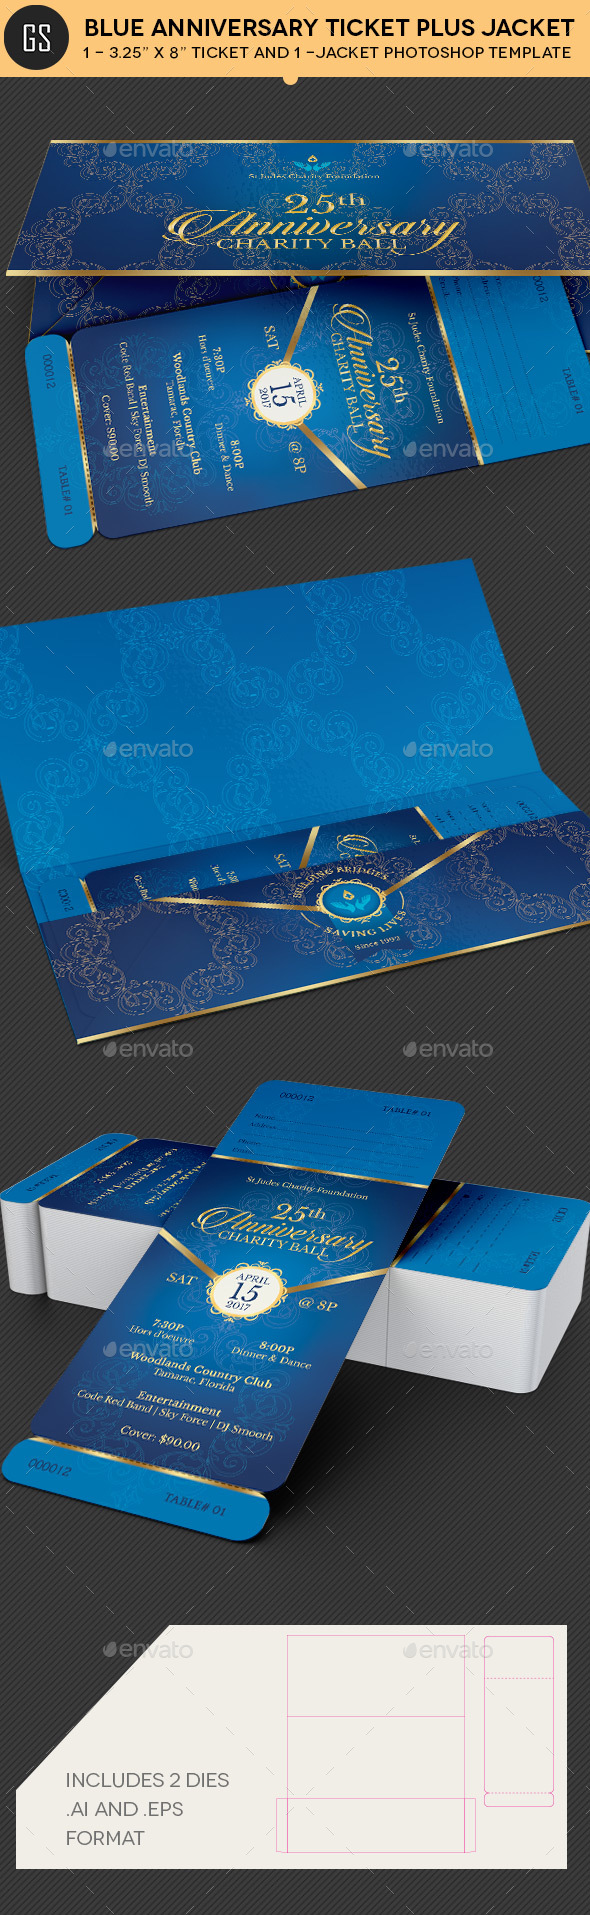 Blue Anniversary Gala Ticket Plus Jacket Template - Miscellaneous Print Templates